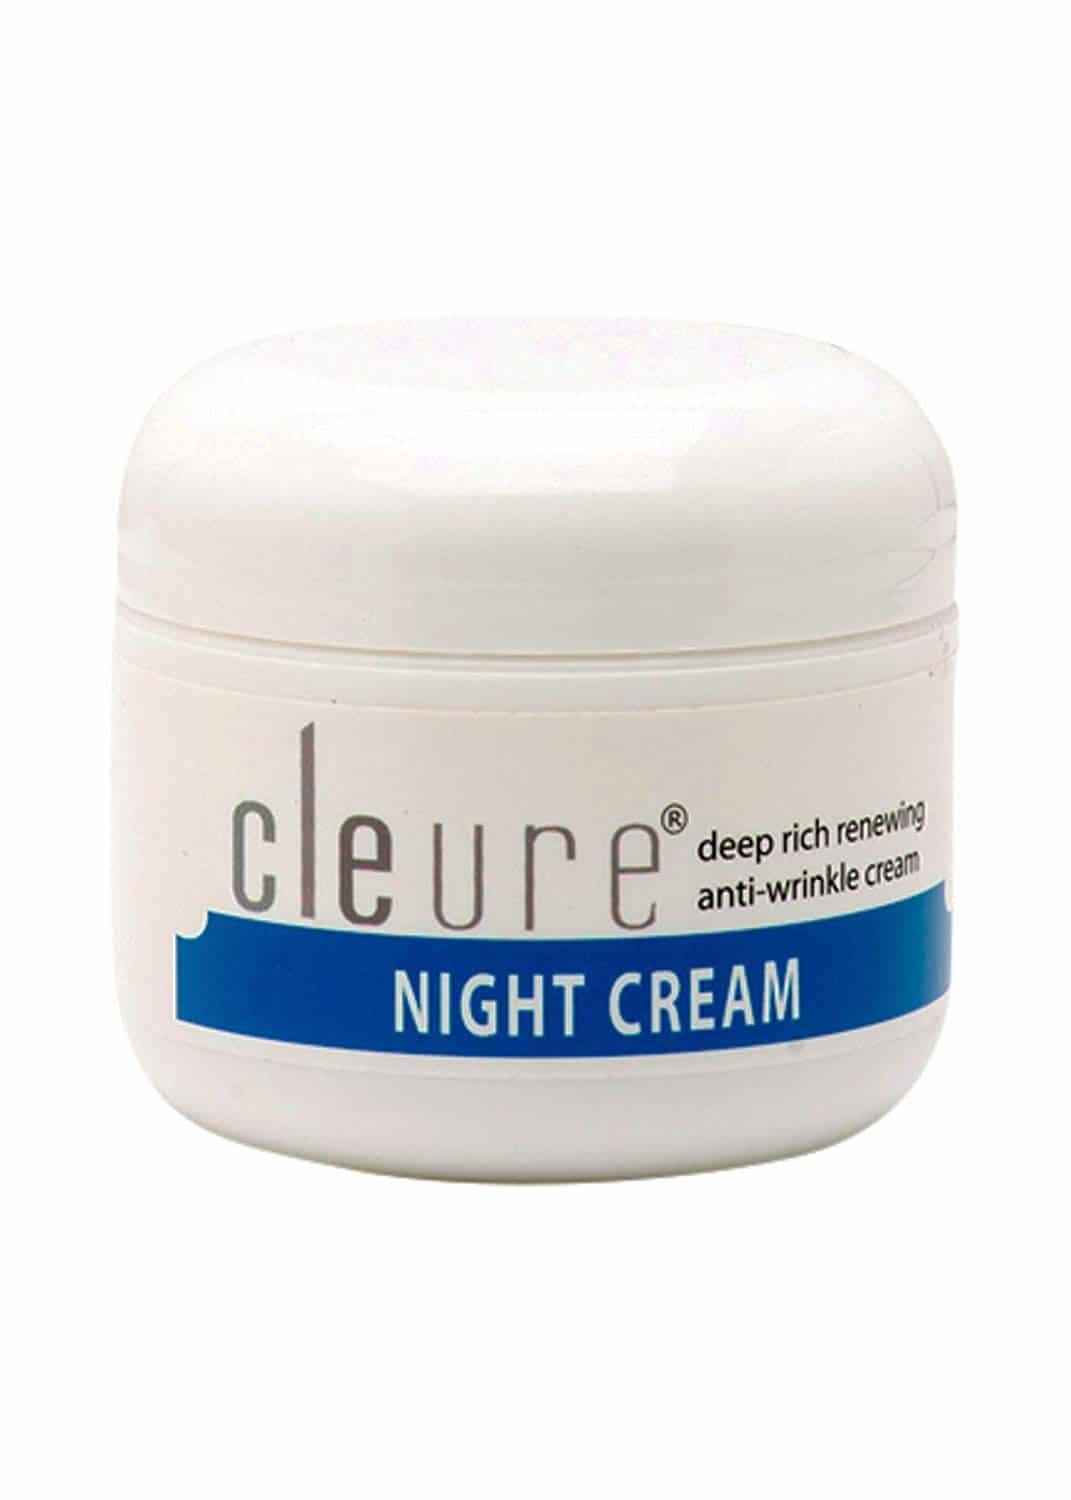 Cleure Hypoallergenic Anti-Aging Night Cream for Sensitive Skin is Paraben Free, Salicylate Free, Fragrance Free and Gluten Free and only has gentle ingredients. It is formulated with Alpha Lipoic Acid, Antioxidants and Shea Butter to help protect, soothe and repair your skin to look younger and beautiful.